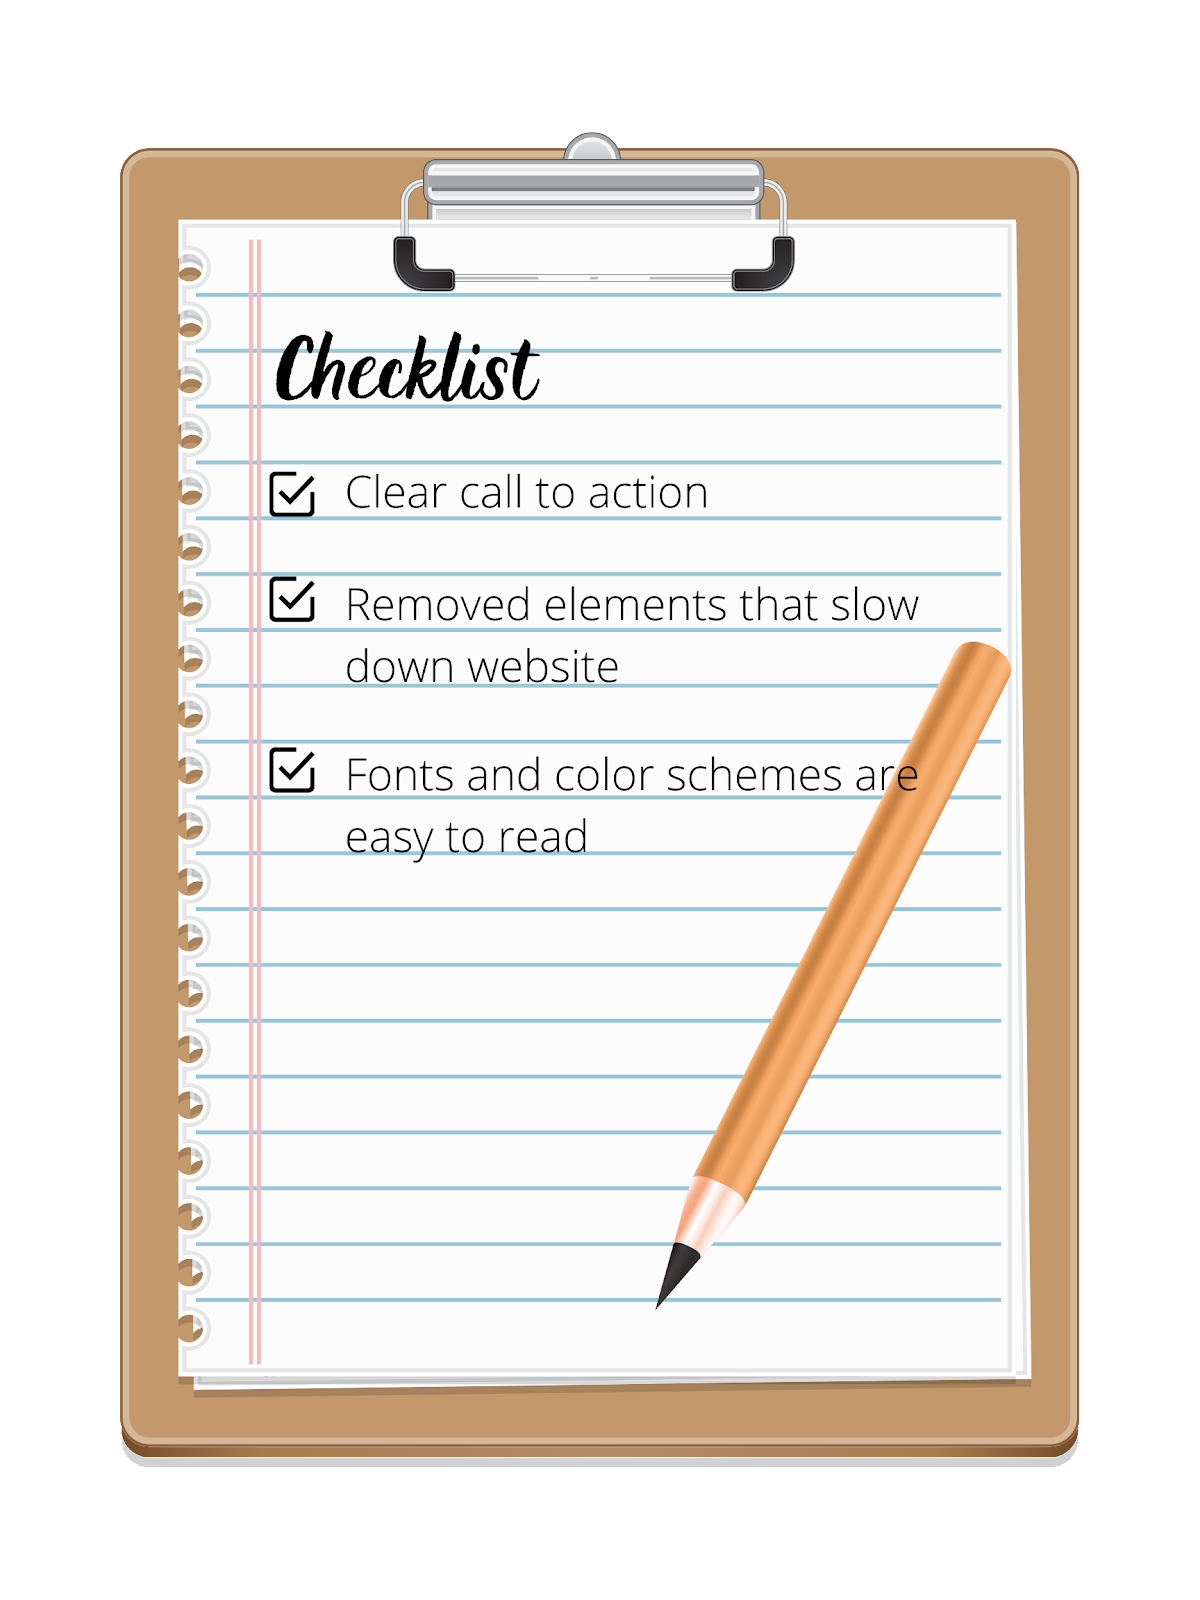 Your website must agree to this checklist to have good user experience.